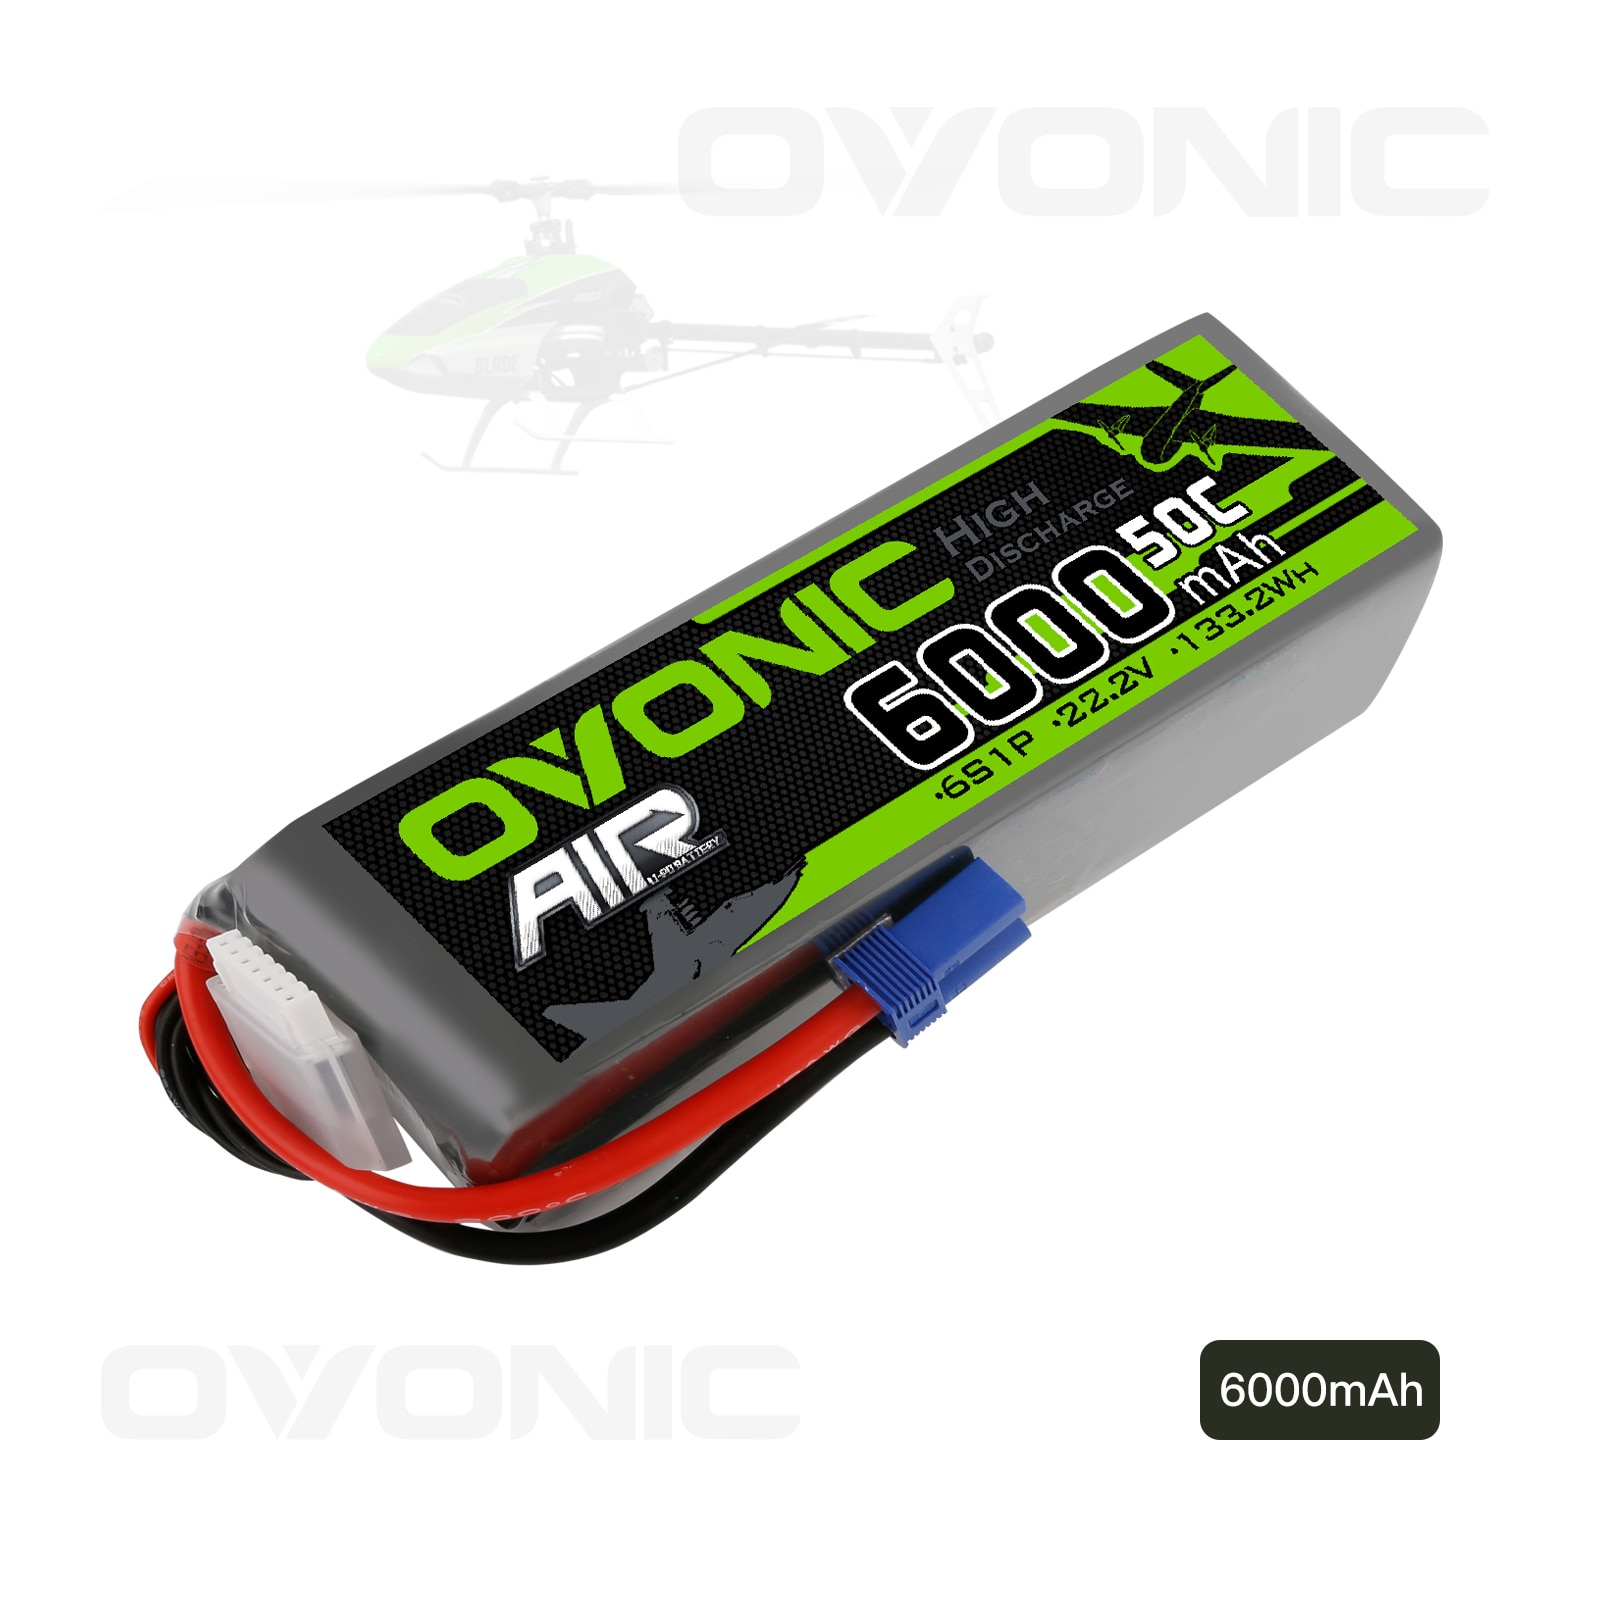 Ovonic Lipo Battery 22.2V 6000mAh 50C EC5 Plug 6S RC Lipo Batteries for RC Car Boat Truck Drone Racing FPV Helicopter